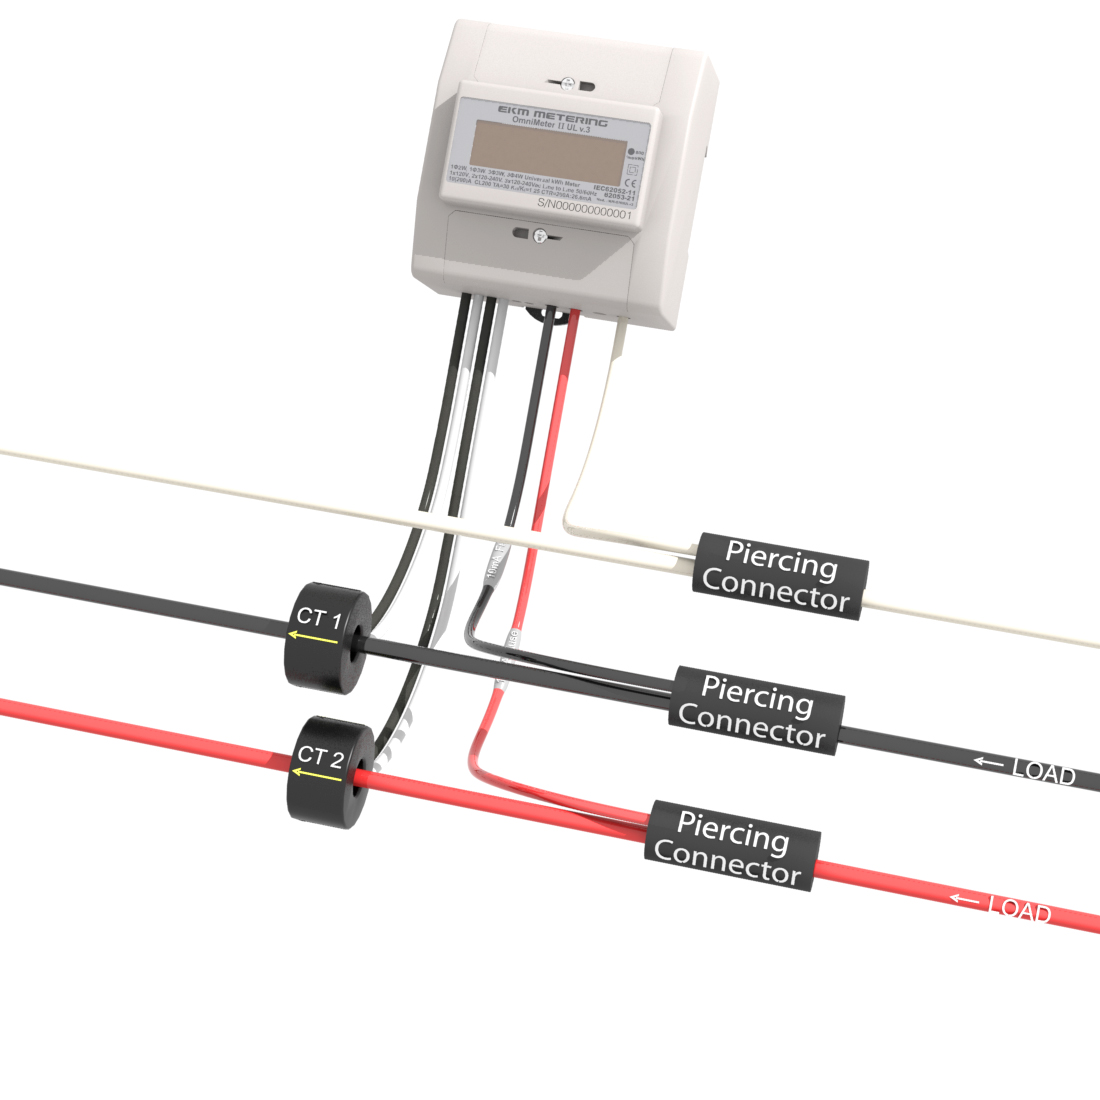 Single phase 3 wire 120/240v metering : EKM Support Desk